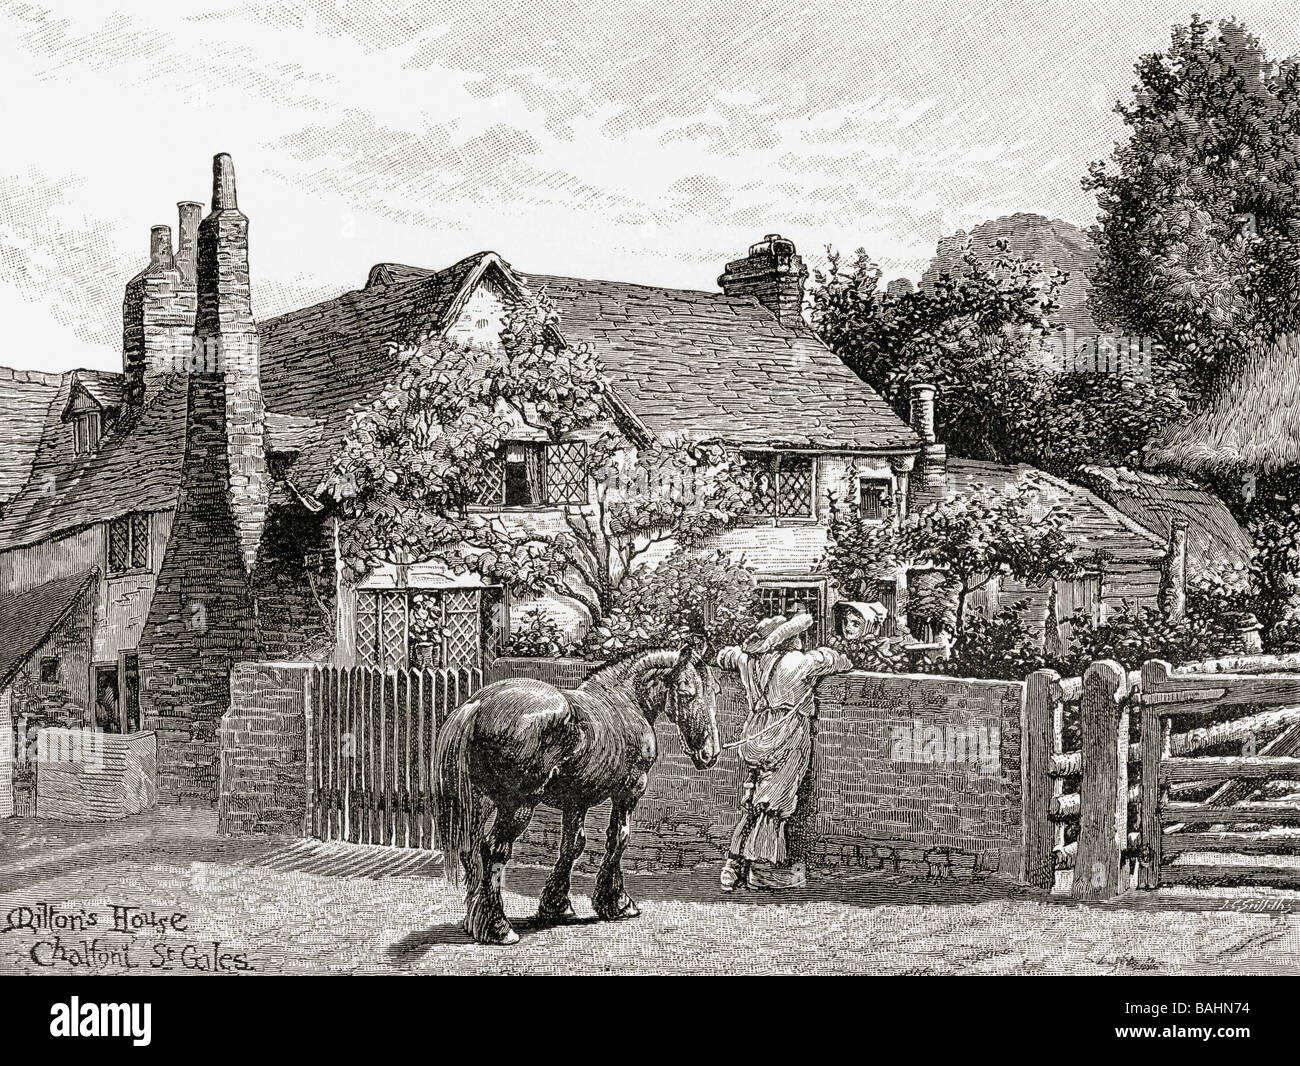 John Milton s house Chalfont St Giles England.  From the book The English Illustrated Magazine 1891 1892 - Stock Image